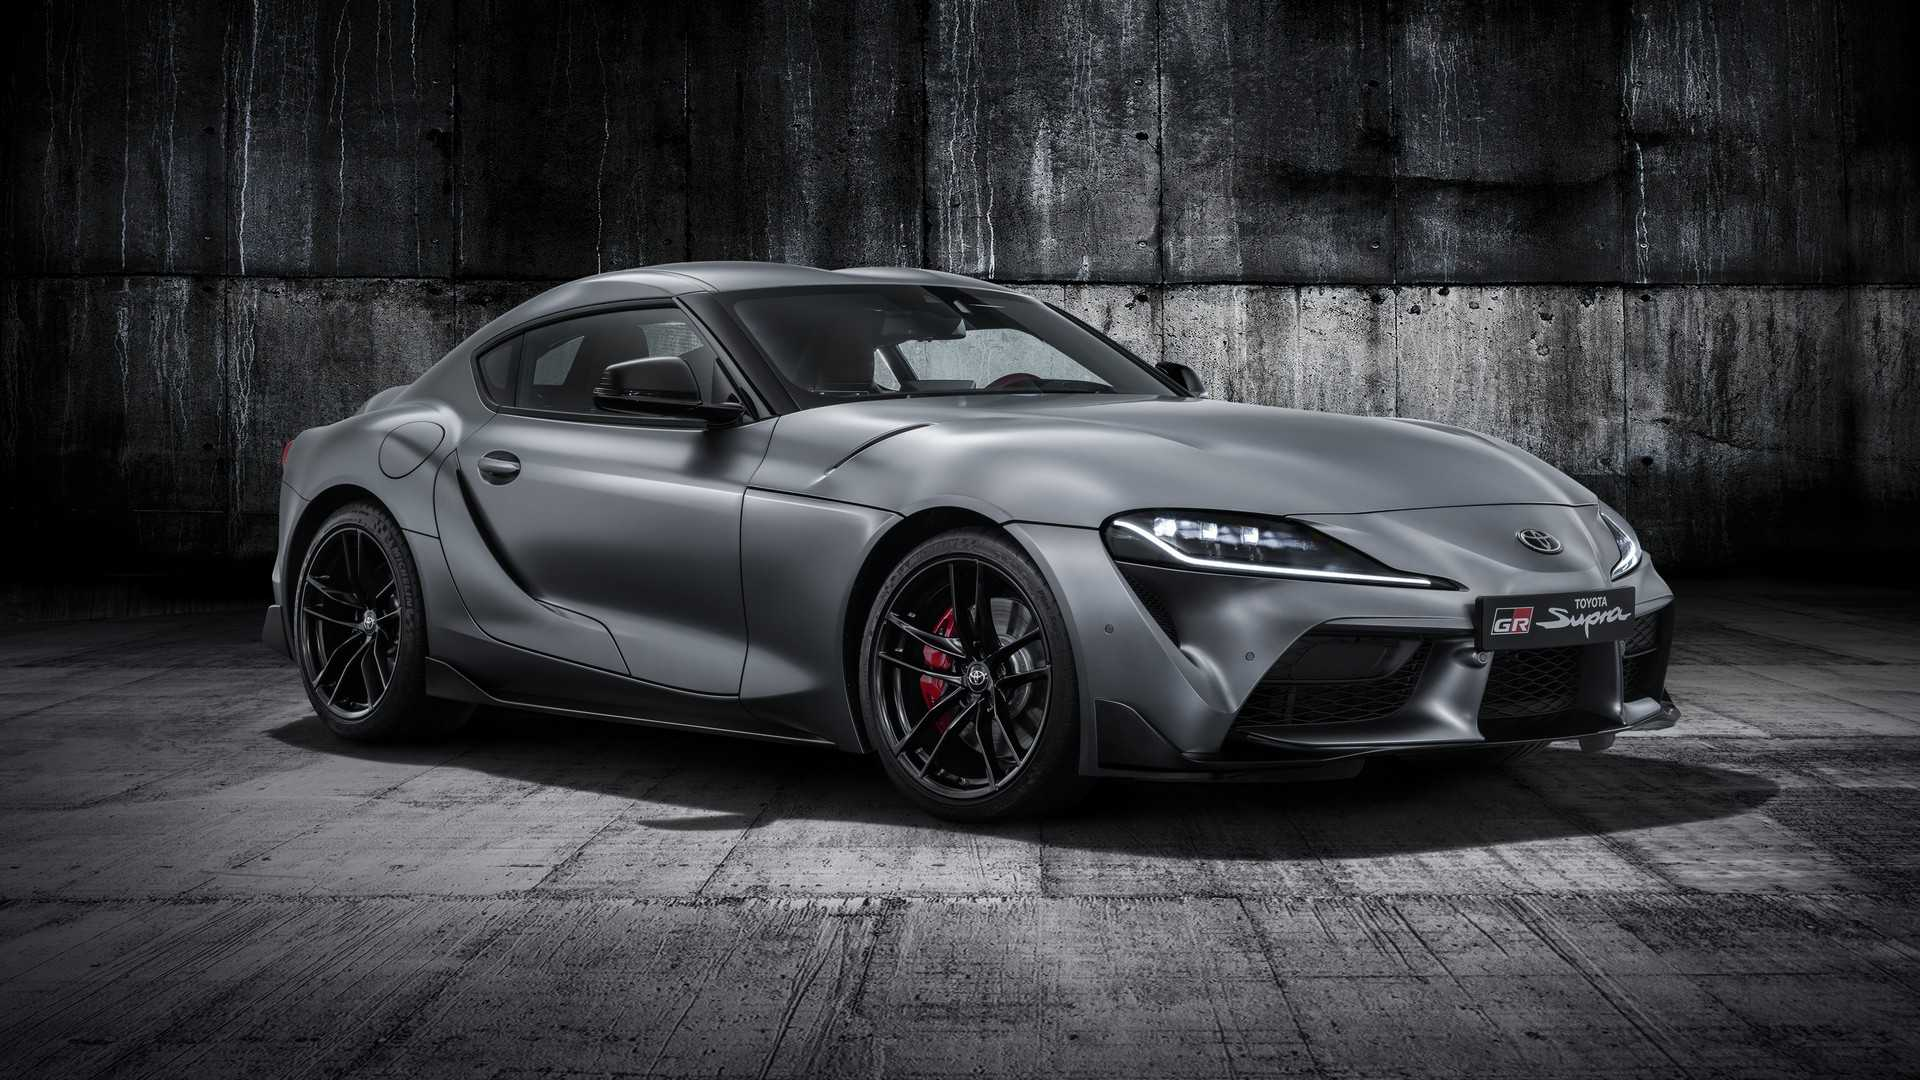 69 The Best 2019 Toyota Supra Reviews